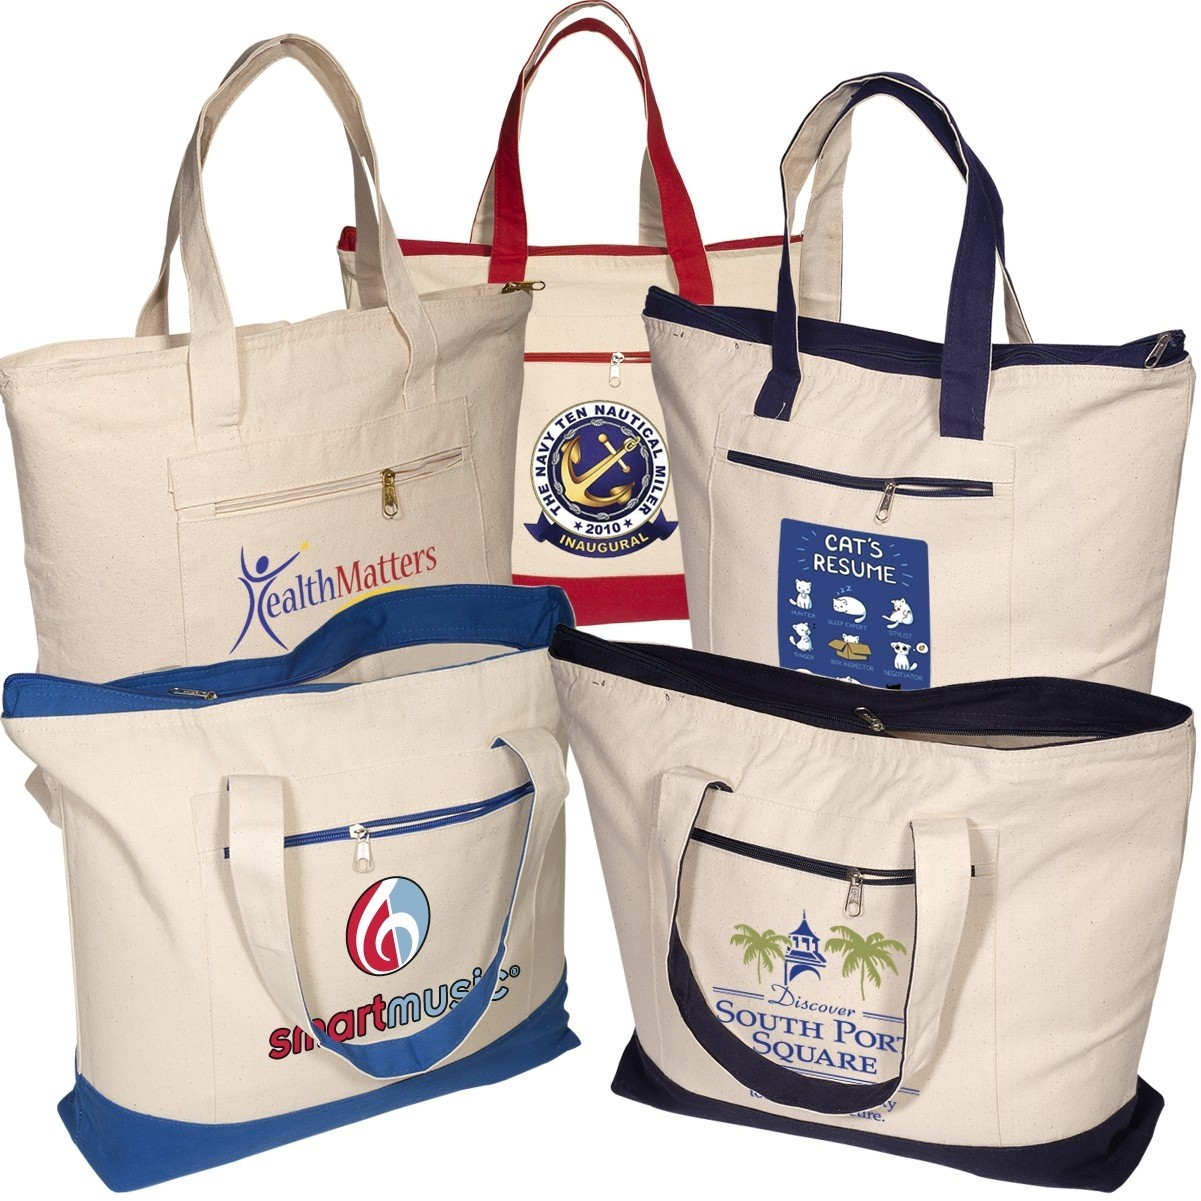 2019 Quick Seller Zippered Cotton Boat Tote